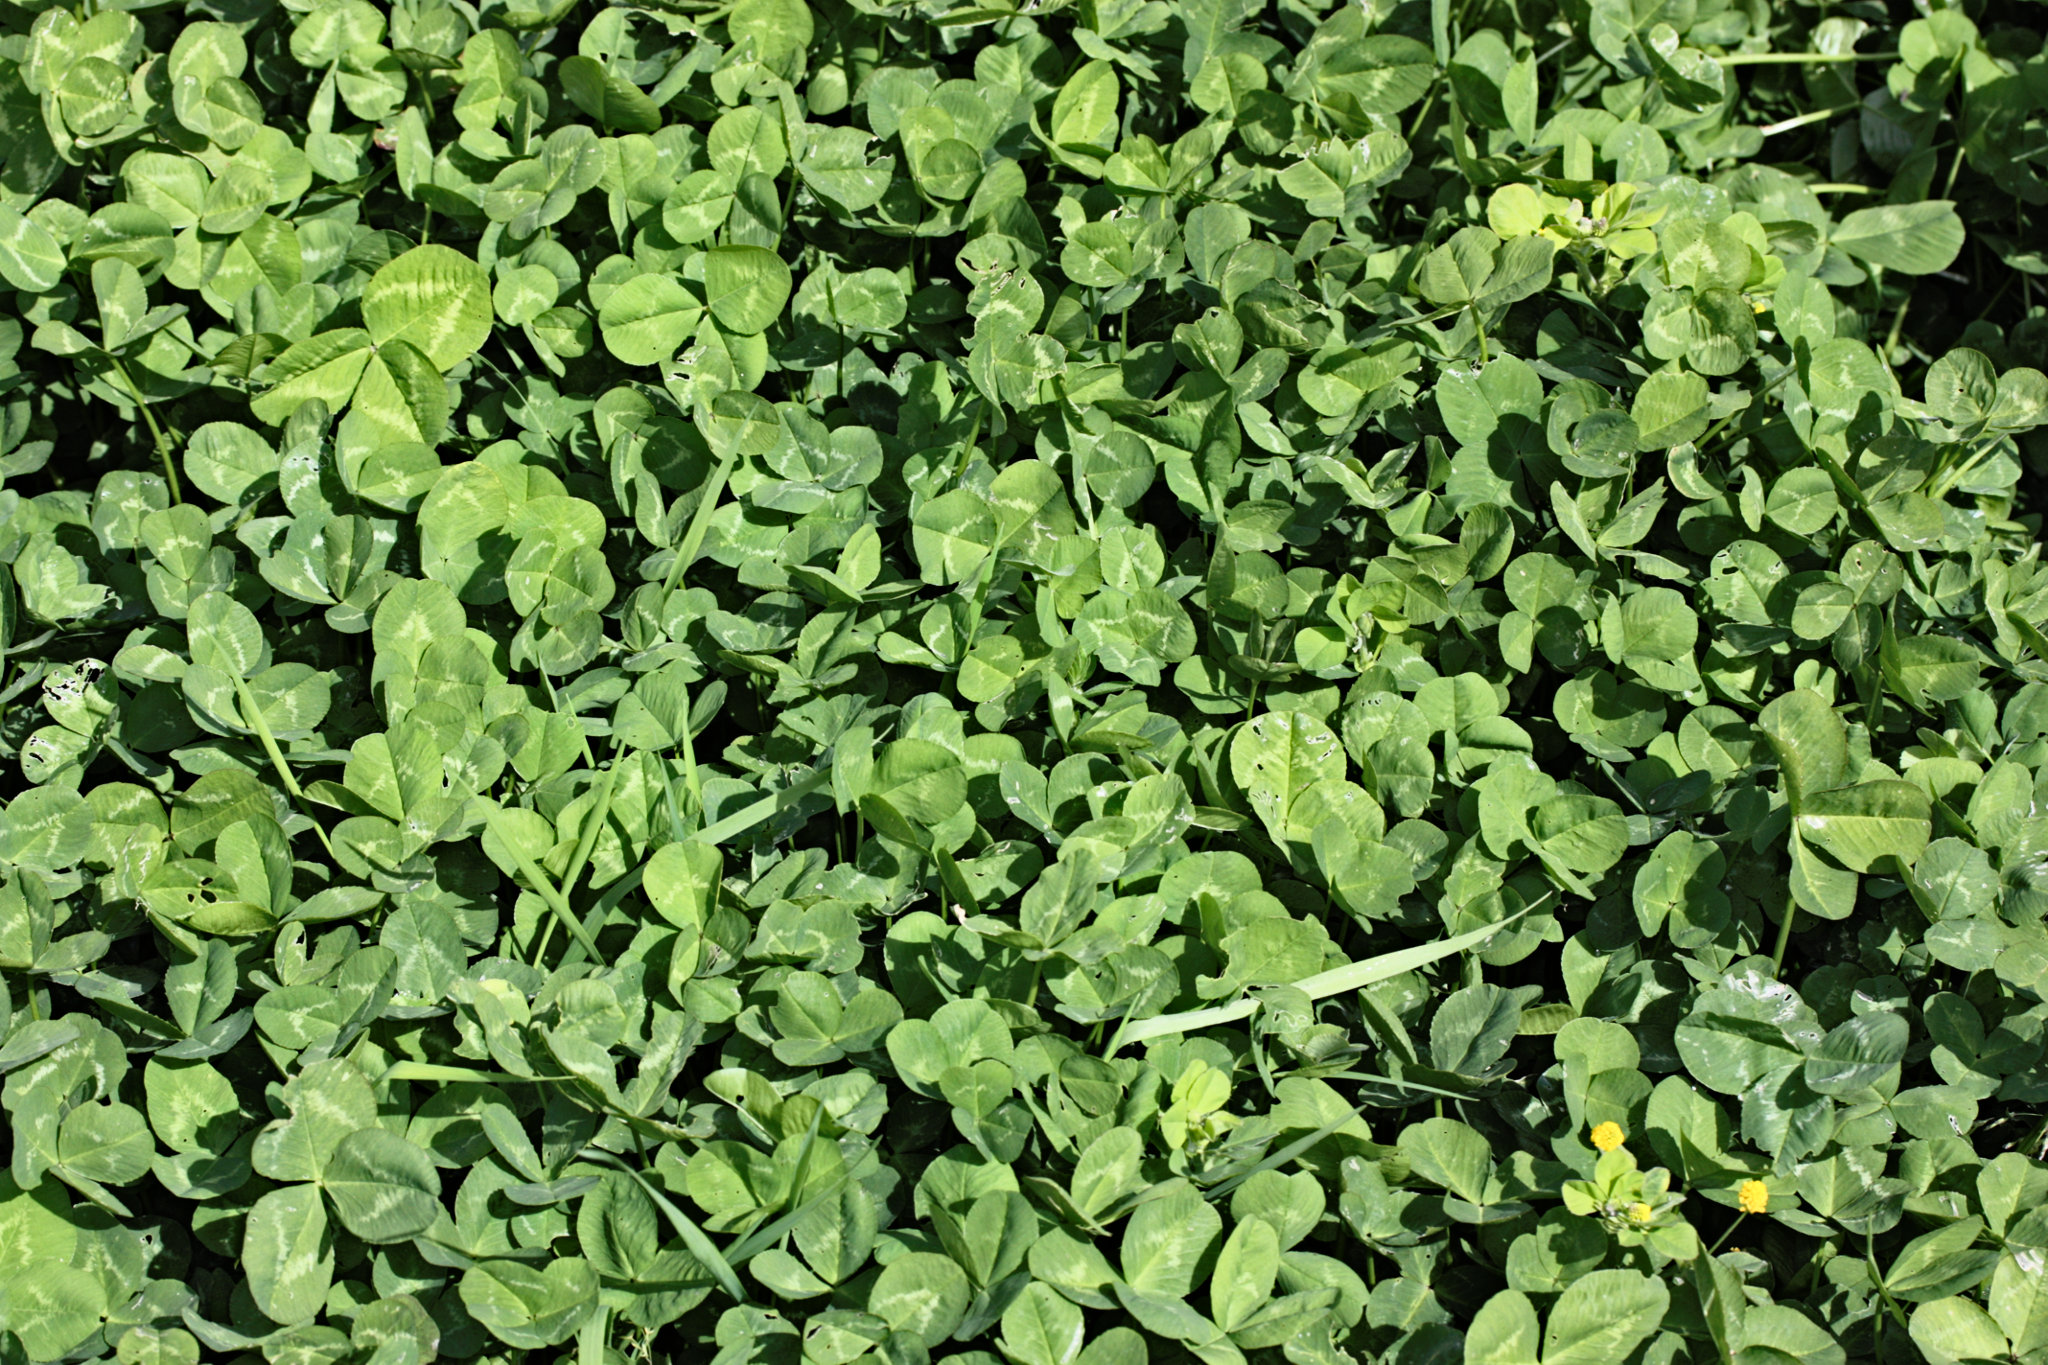 the development of clover plants using nitrogen fixation Nitrogen is a critical limiting element for plant growth and production  biological  nitrogen fixation (bnf), discovered by beijerinck in 1901 (beijerinck  important  legumes used in agricultural systems include alfalfa, beans, clover, cowpeas,.